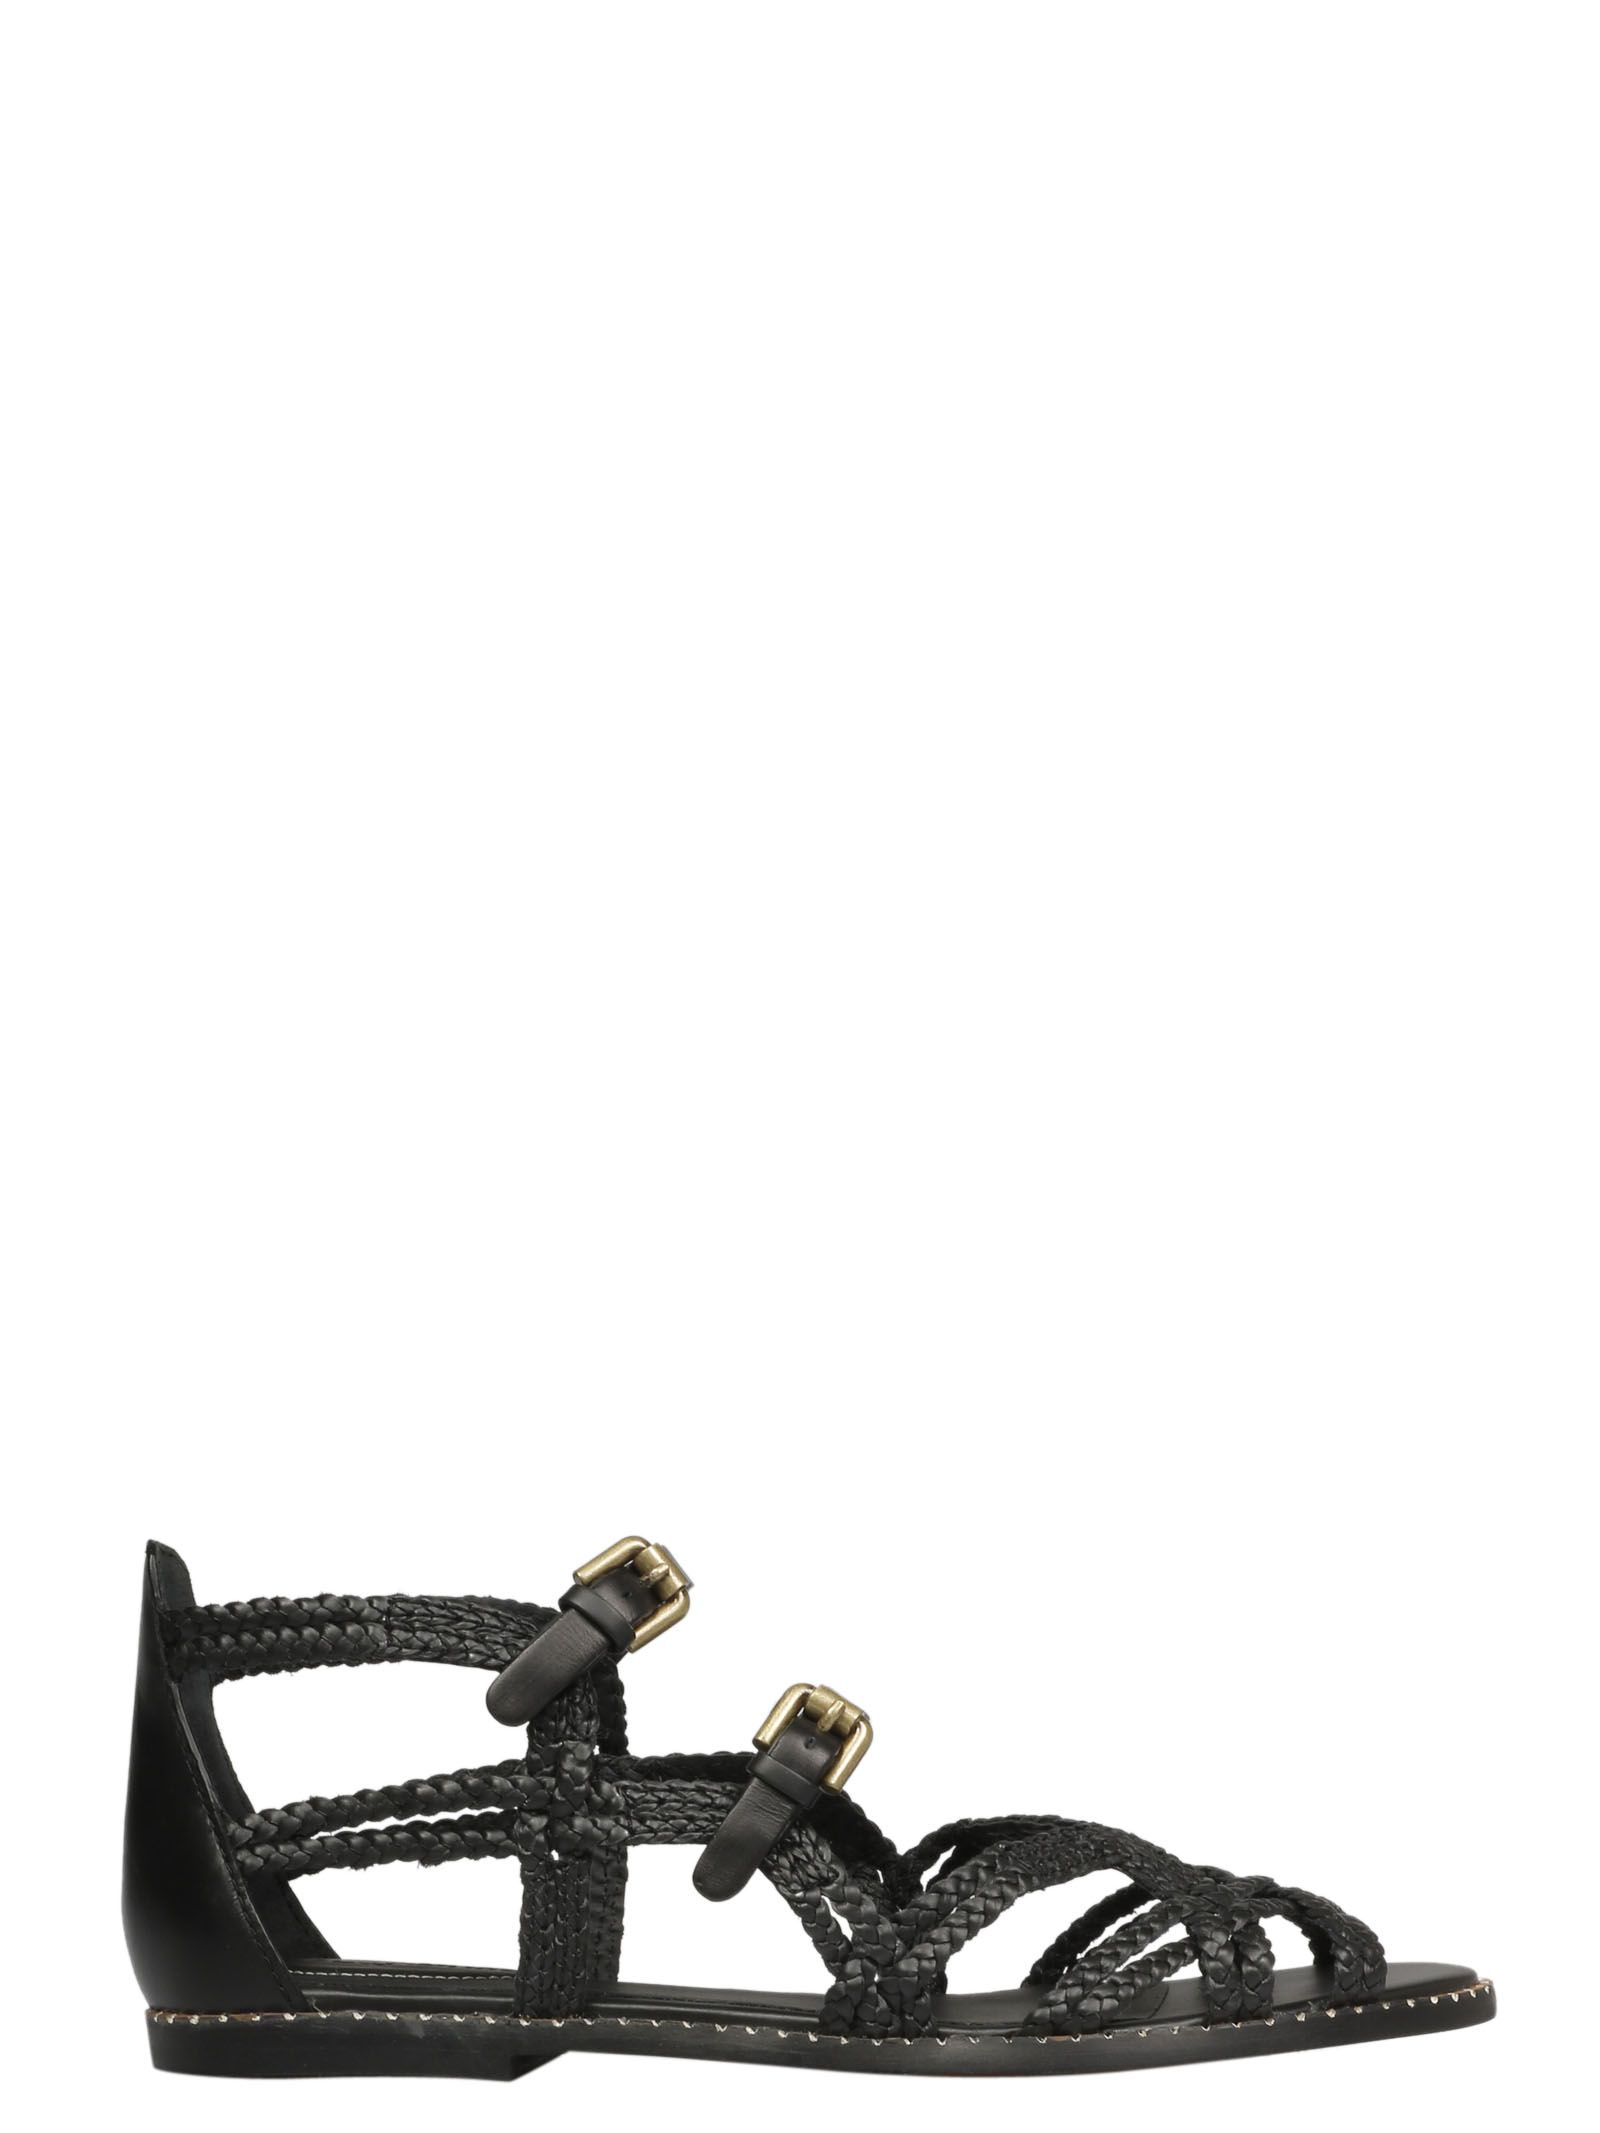 5ddbd9e430f9 See by Chloé See By Chloé Woven Strappy Sandals - Nero - 10837458 ...